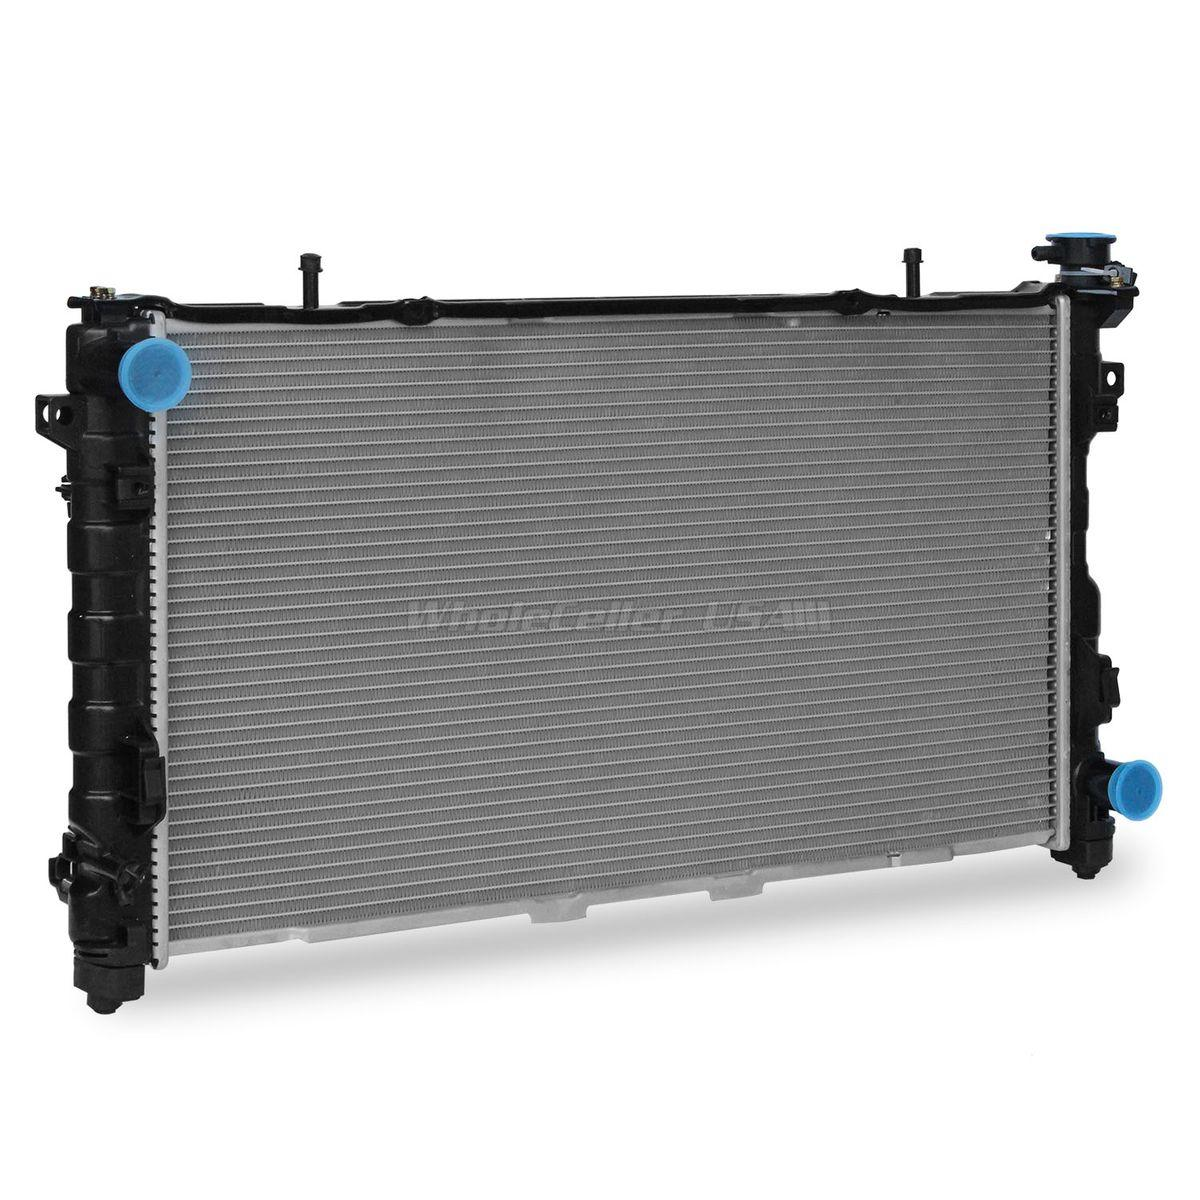 2795 RADIATOR FOR CHRYSLER TOWN/COUNTRY VOYAGER 3.3L 3.8L